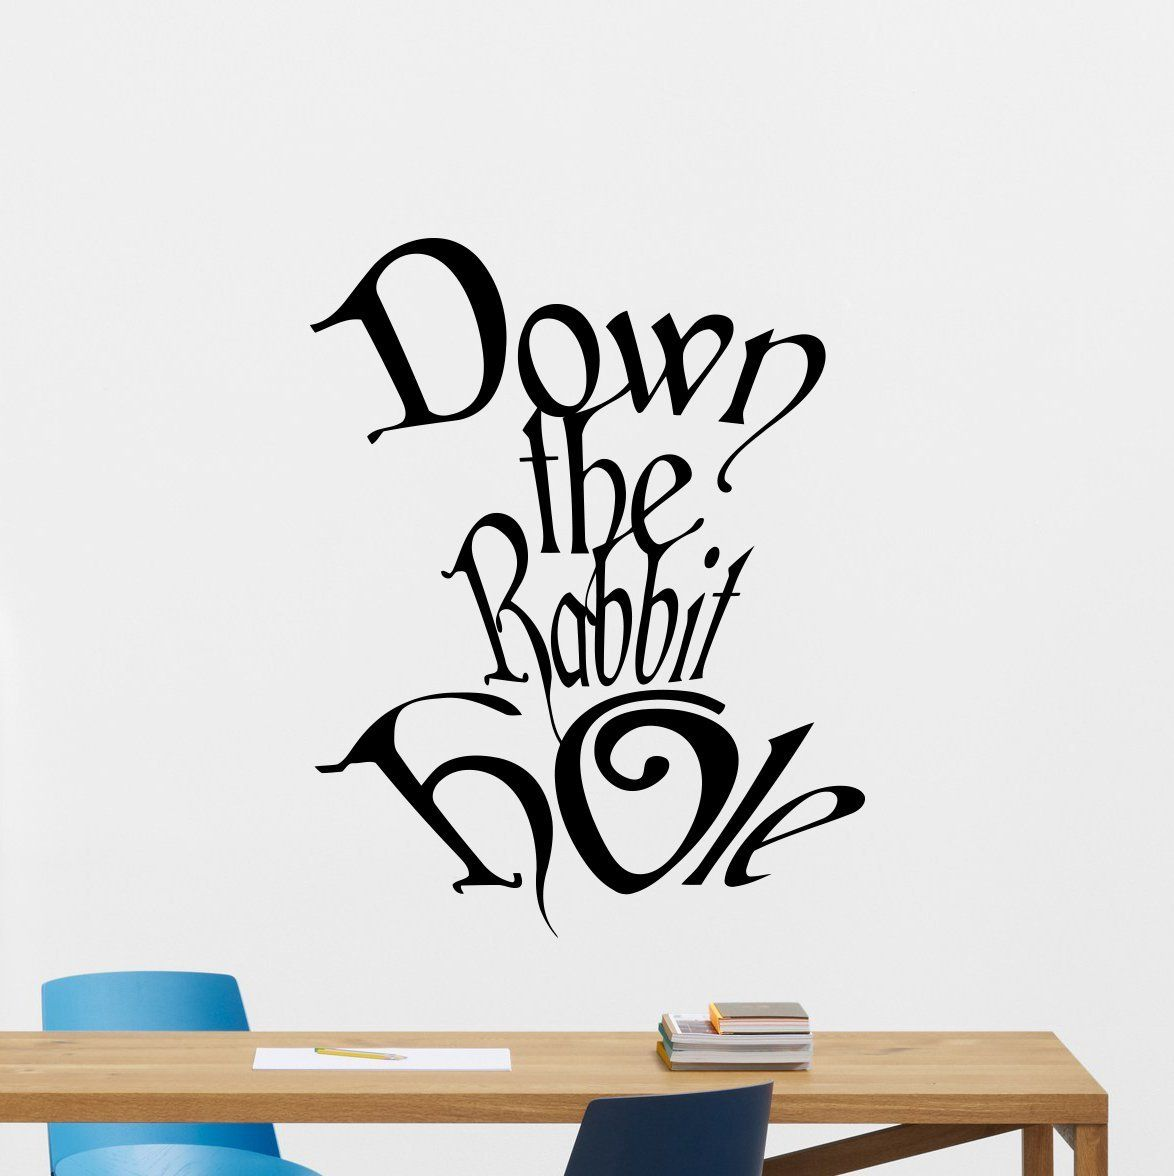 Down the rabbit hole wall decal alice in wonderland vinyl sticker disney cartoon wall art design housewares kids boy girl room bedroom decor removable wall